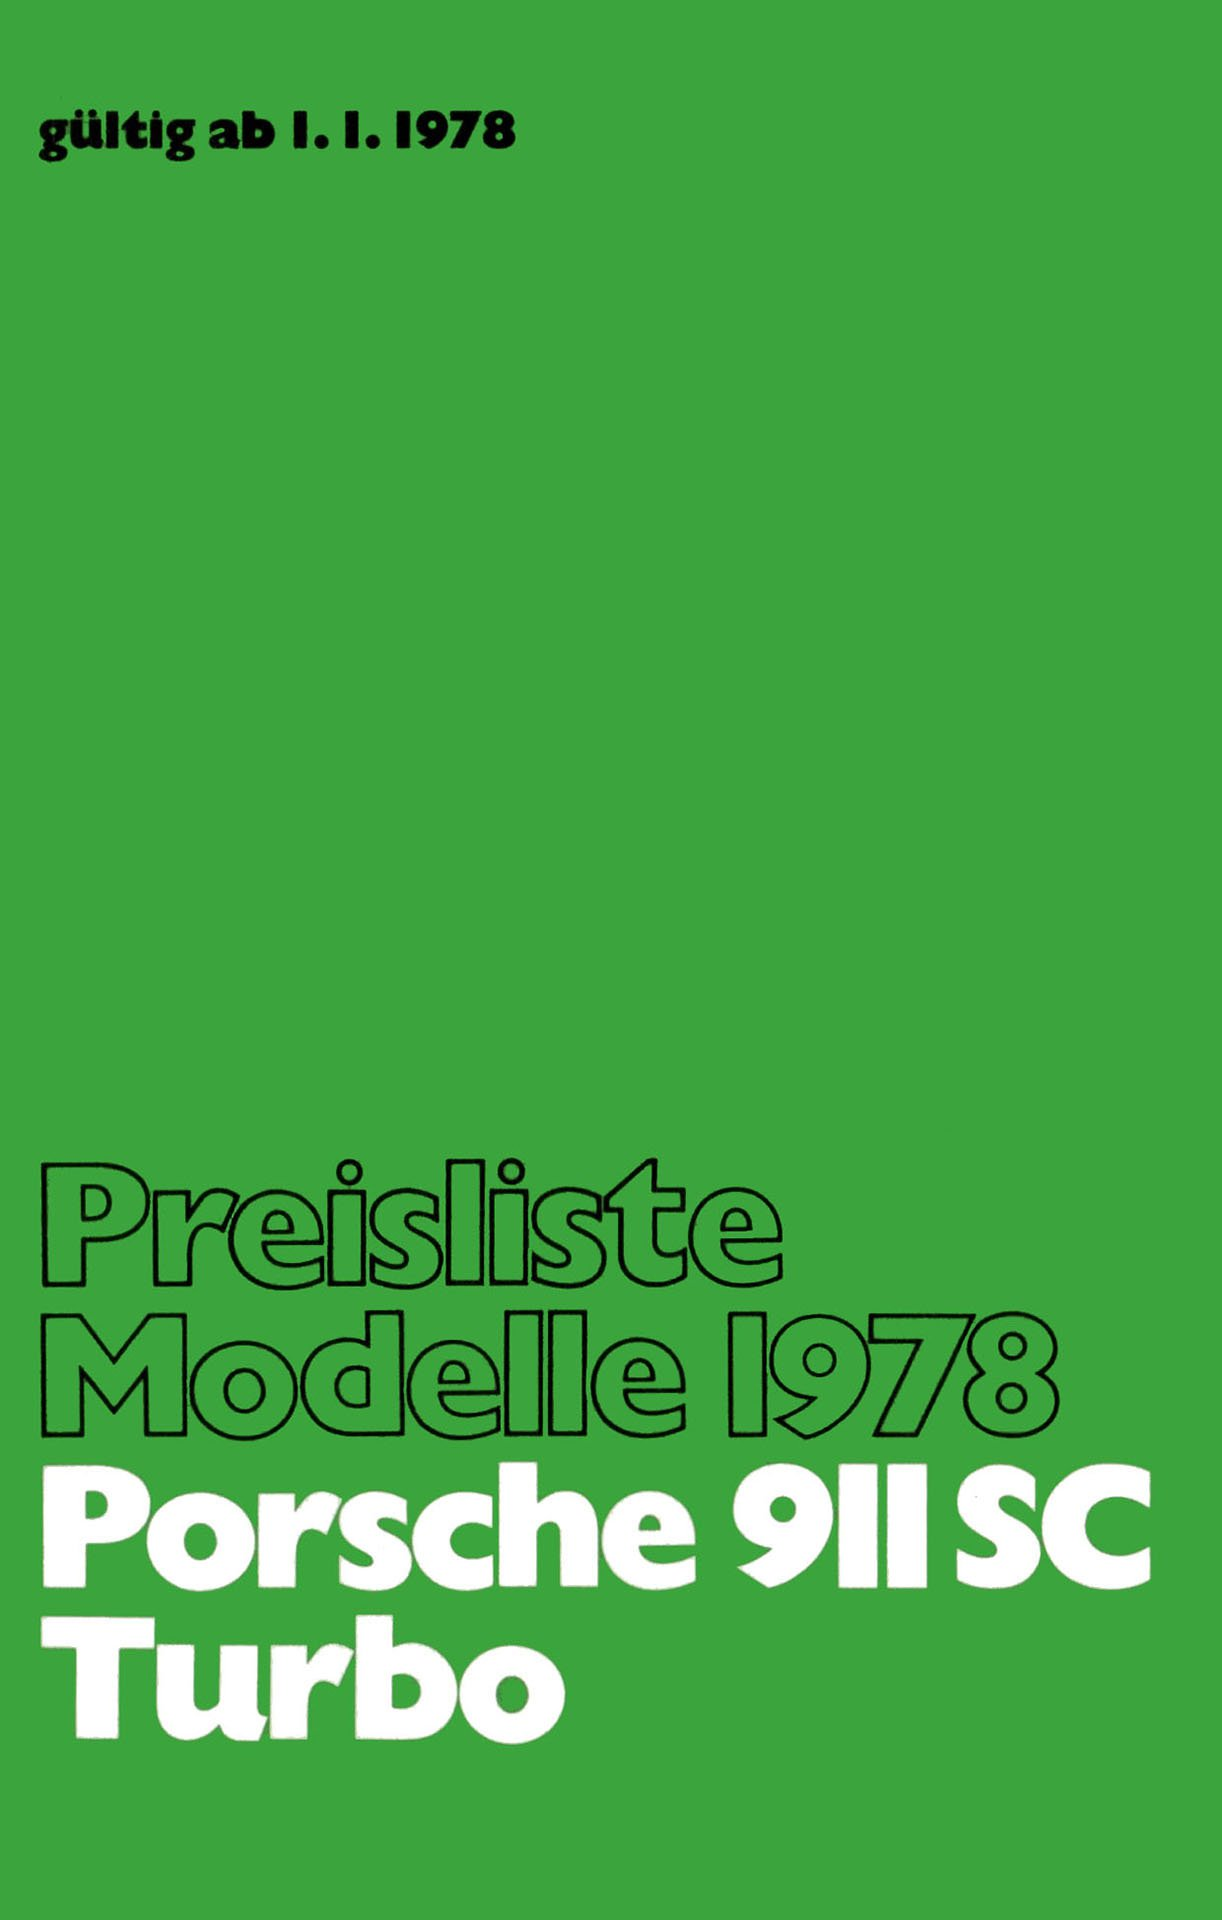 Porsche 911 SC turbo price list 1978